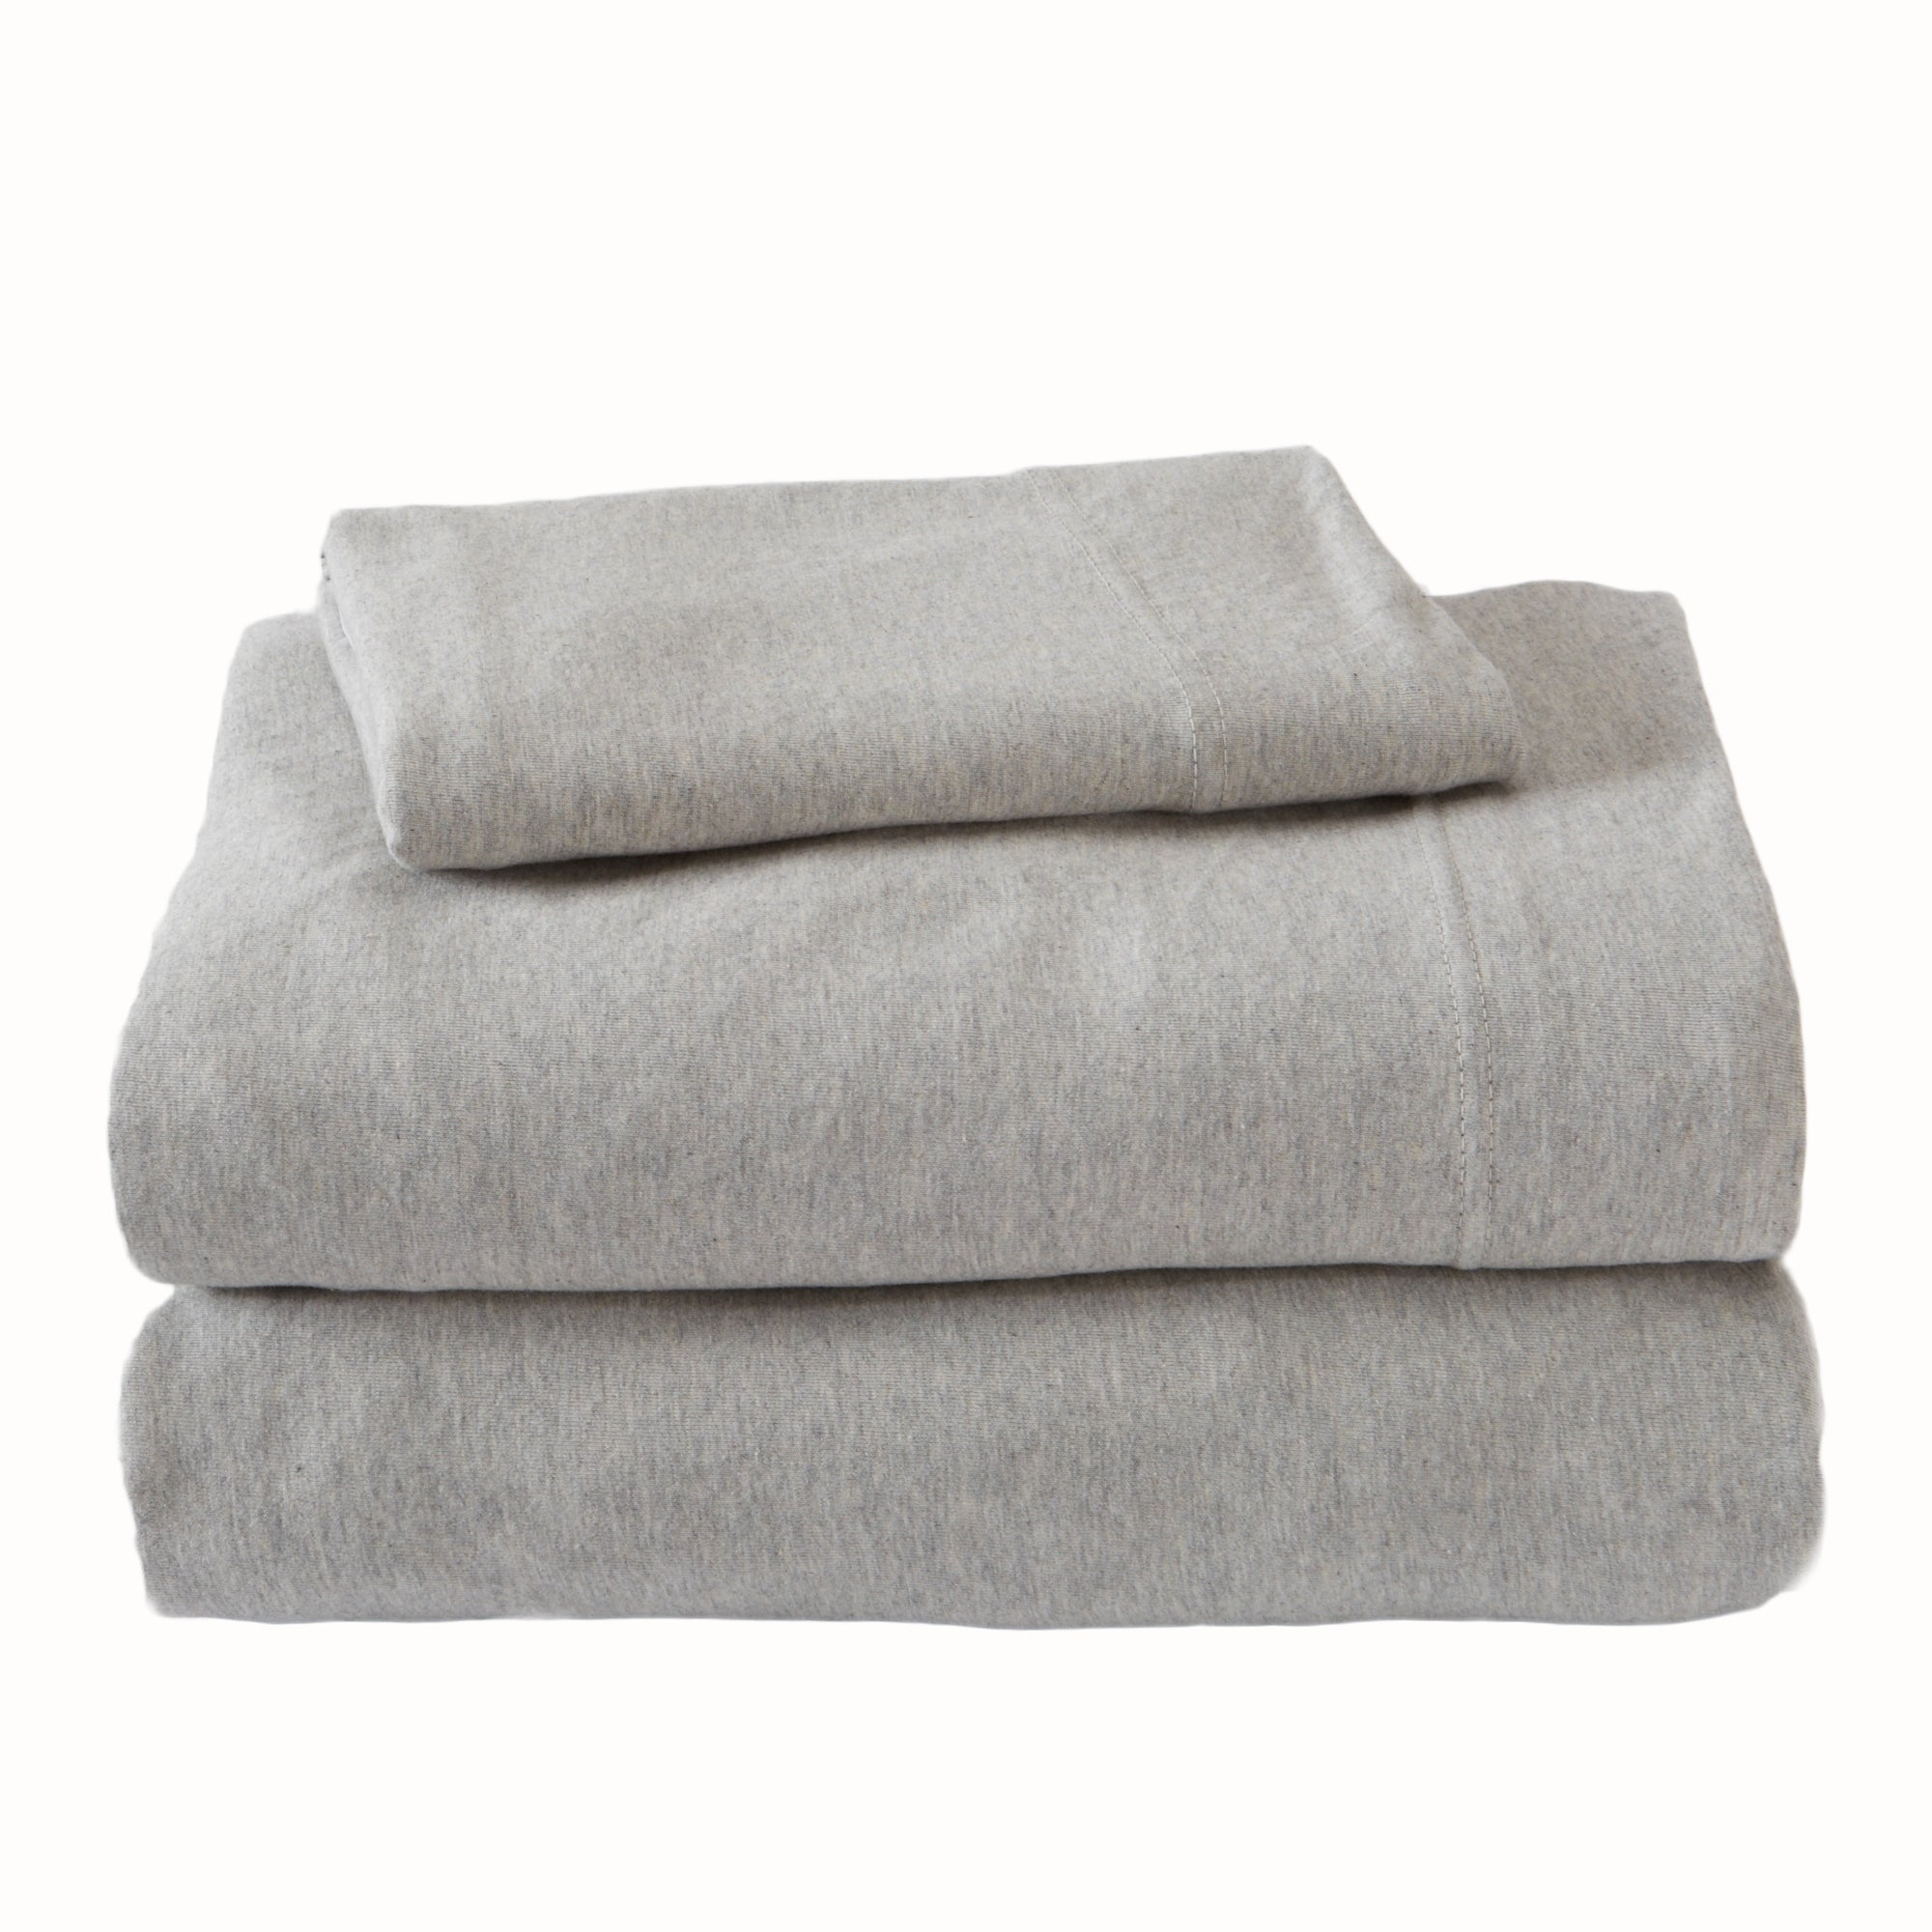 Home Fashion Designs Extra Soft Heather Jersey Knit Sheet Set On Free Shipping Orders Over 45 21018311